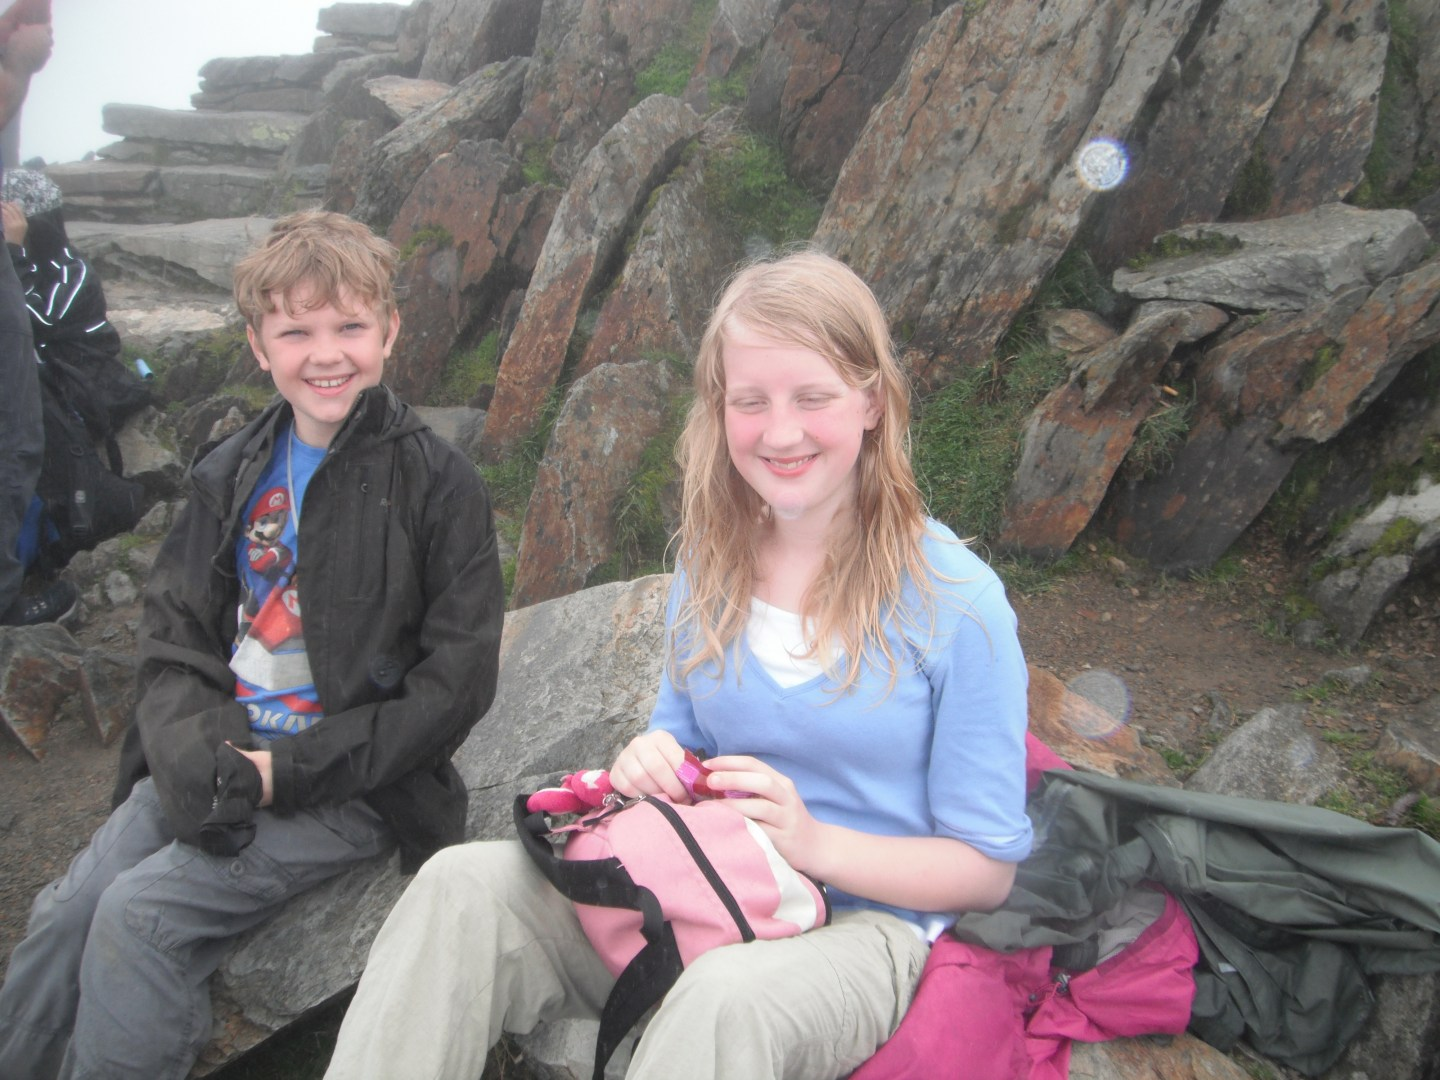 Xene and Lochlan eating lunch on the summit of Mount Snowdon